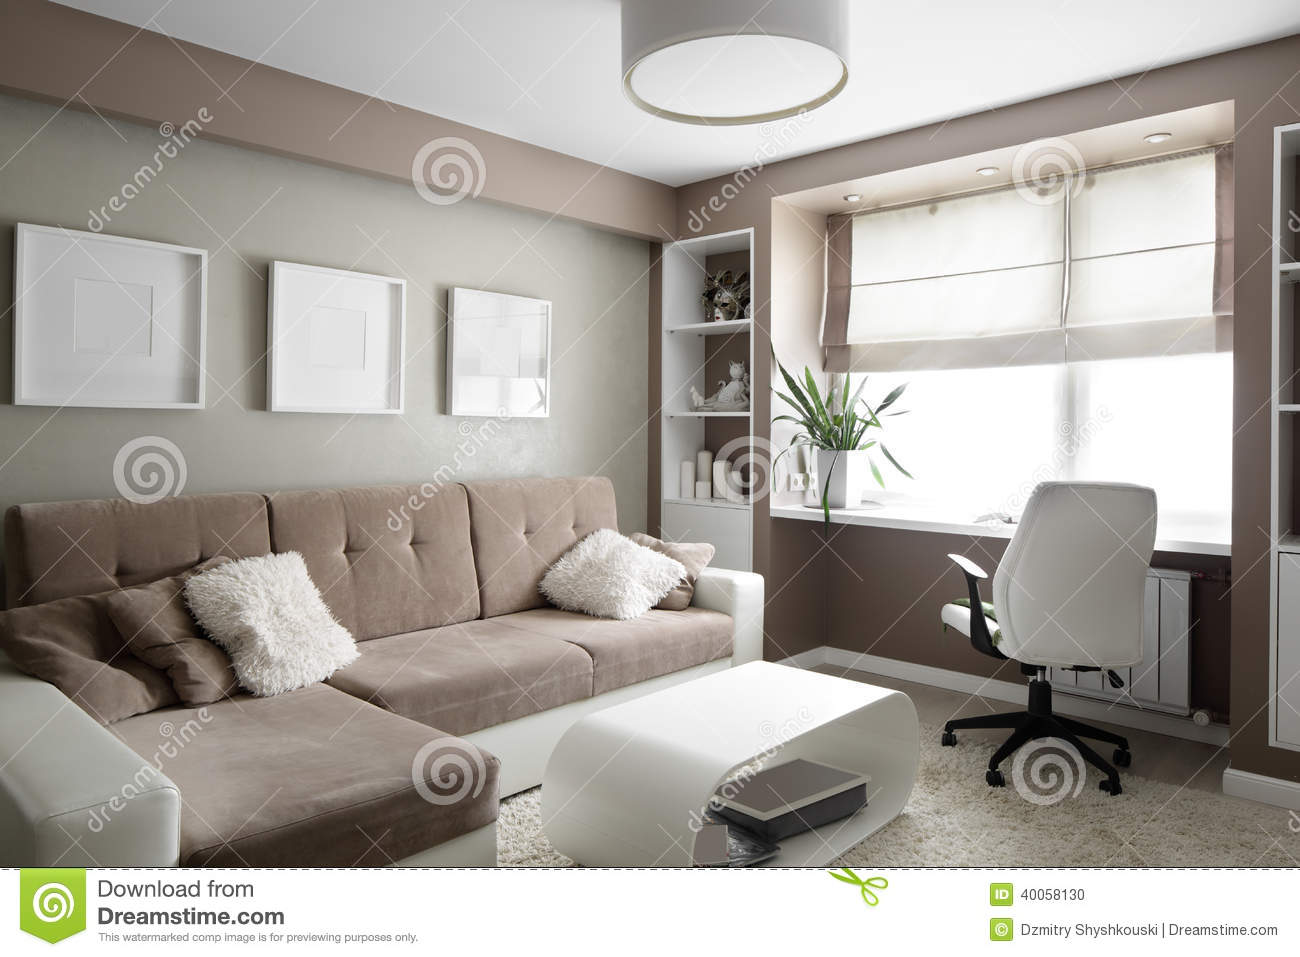 Bright interior of living room stock photo image 40058130 for Big modern living room